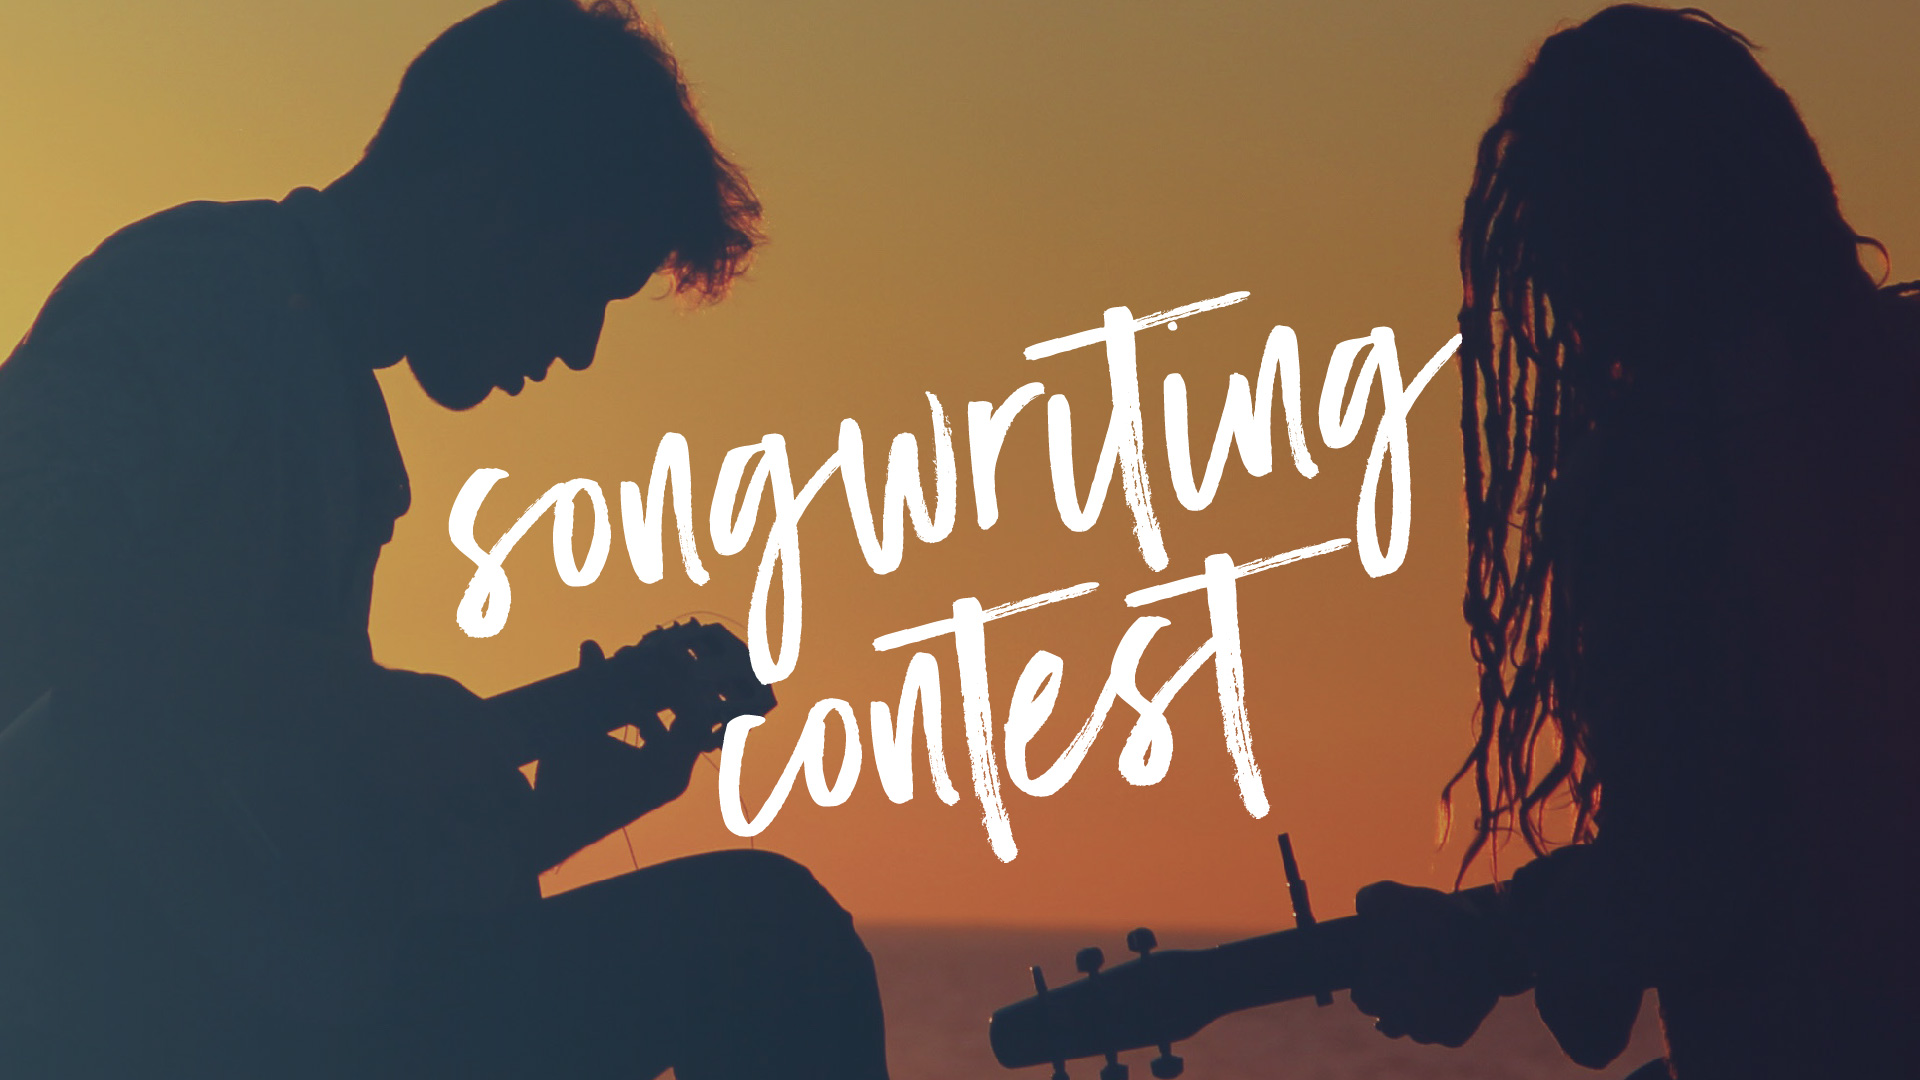 Songwriting contest 01